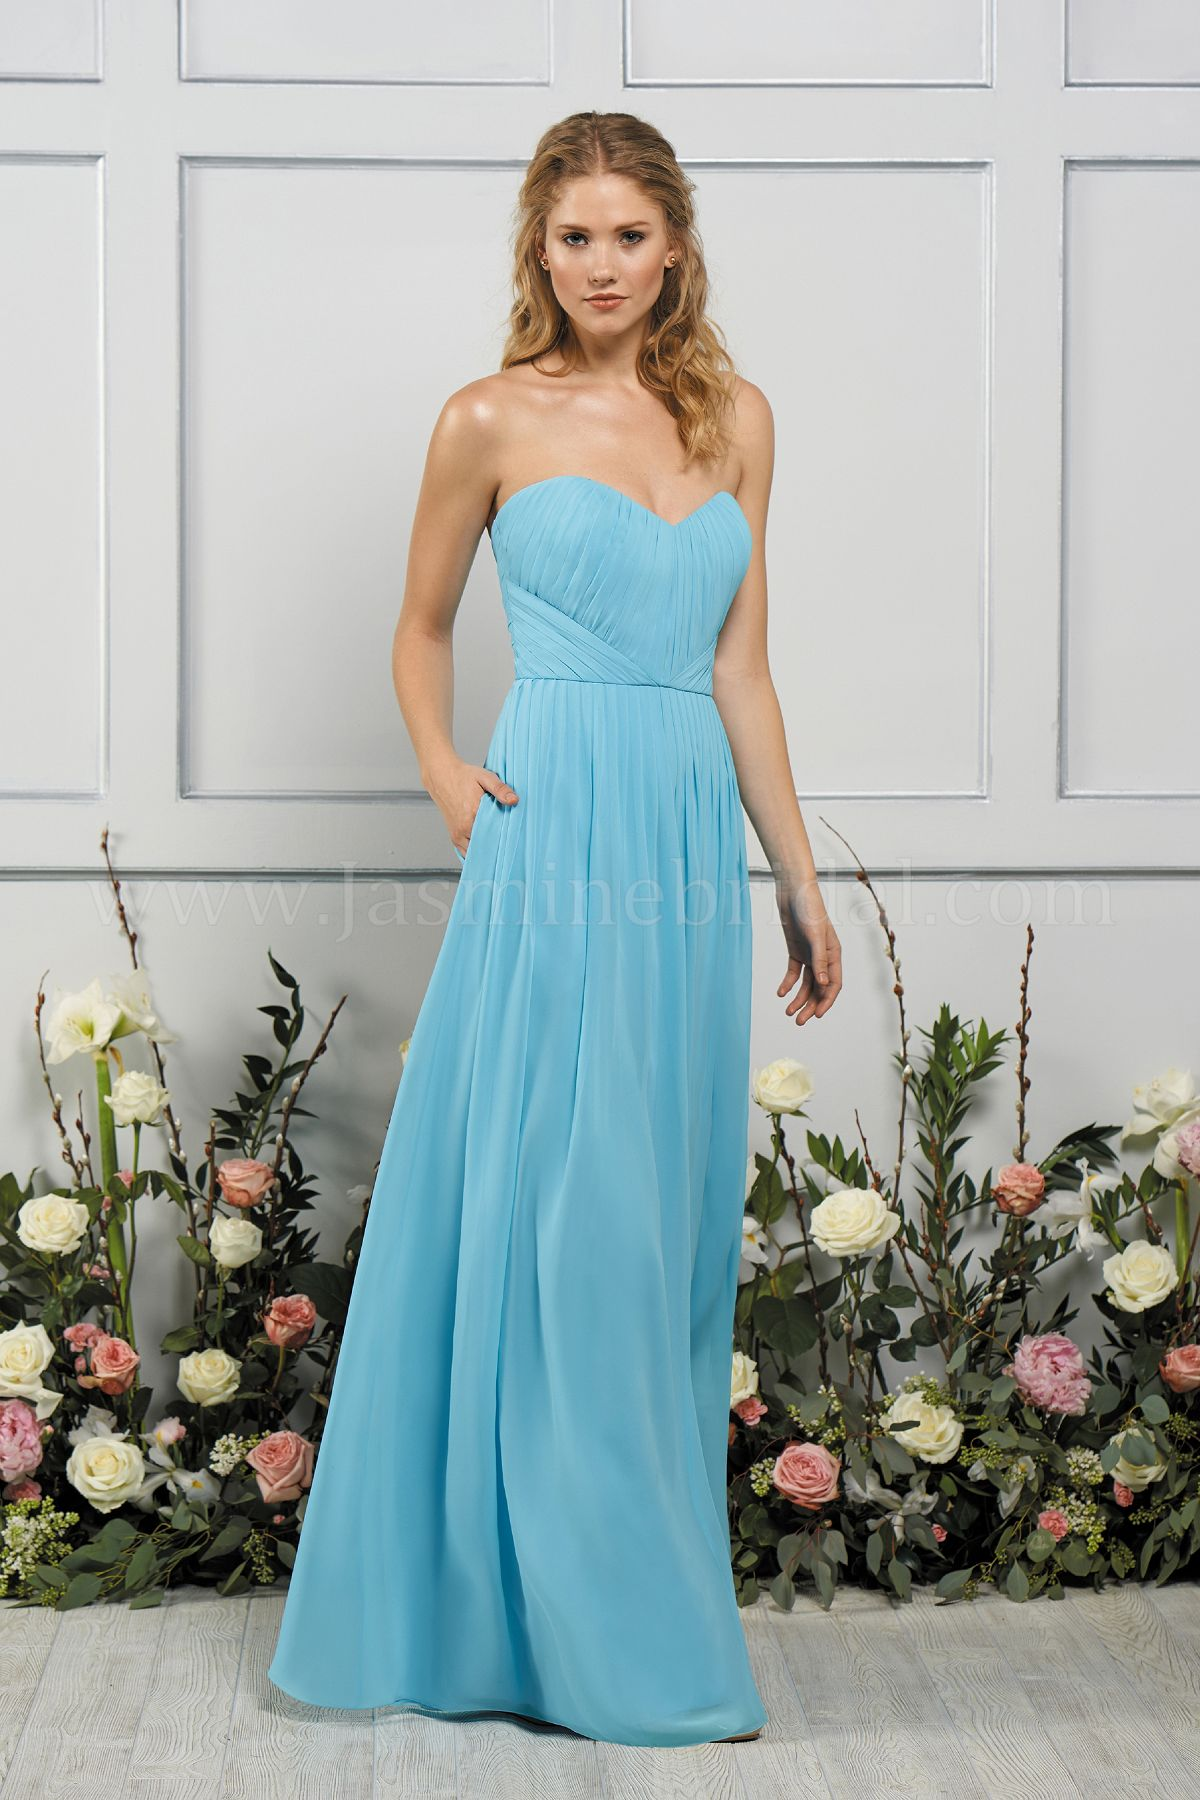 4a1ae6005b B193055 Long Sweetheart Neckline Poly Chiffon Bridesmaid Dress